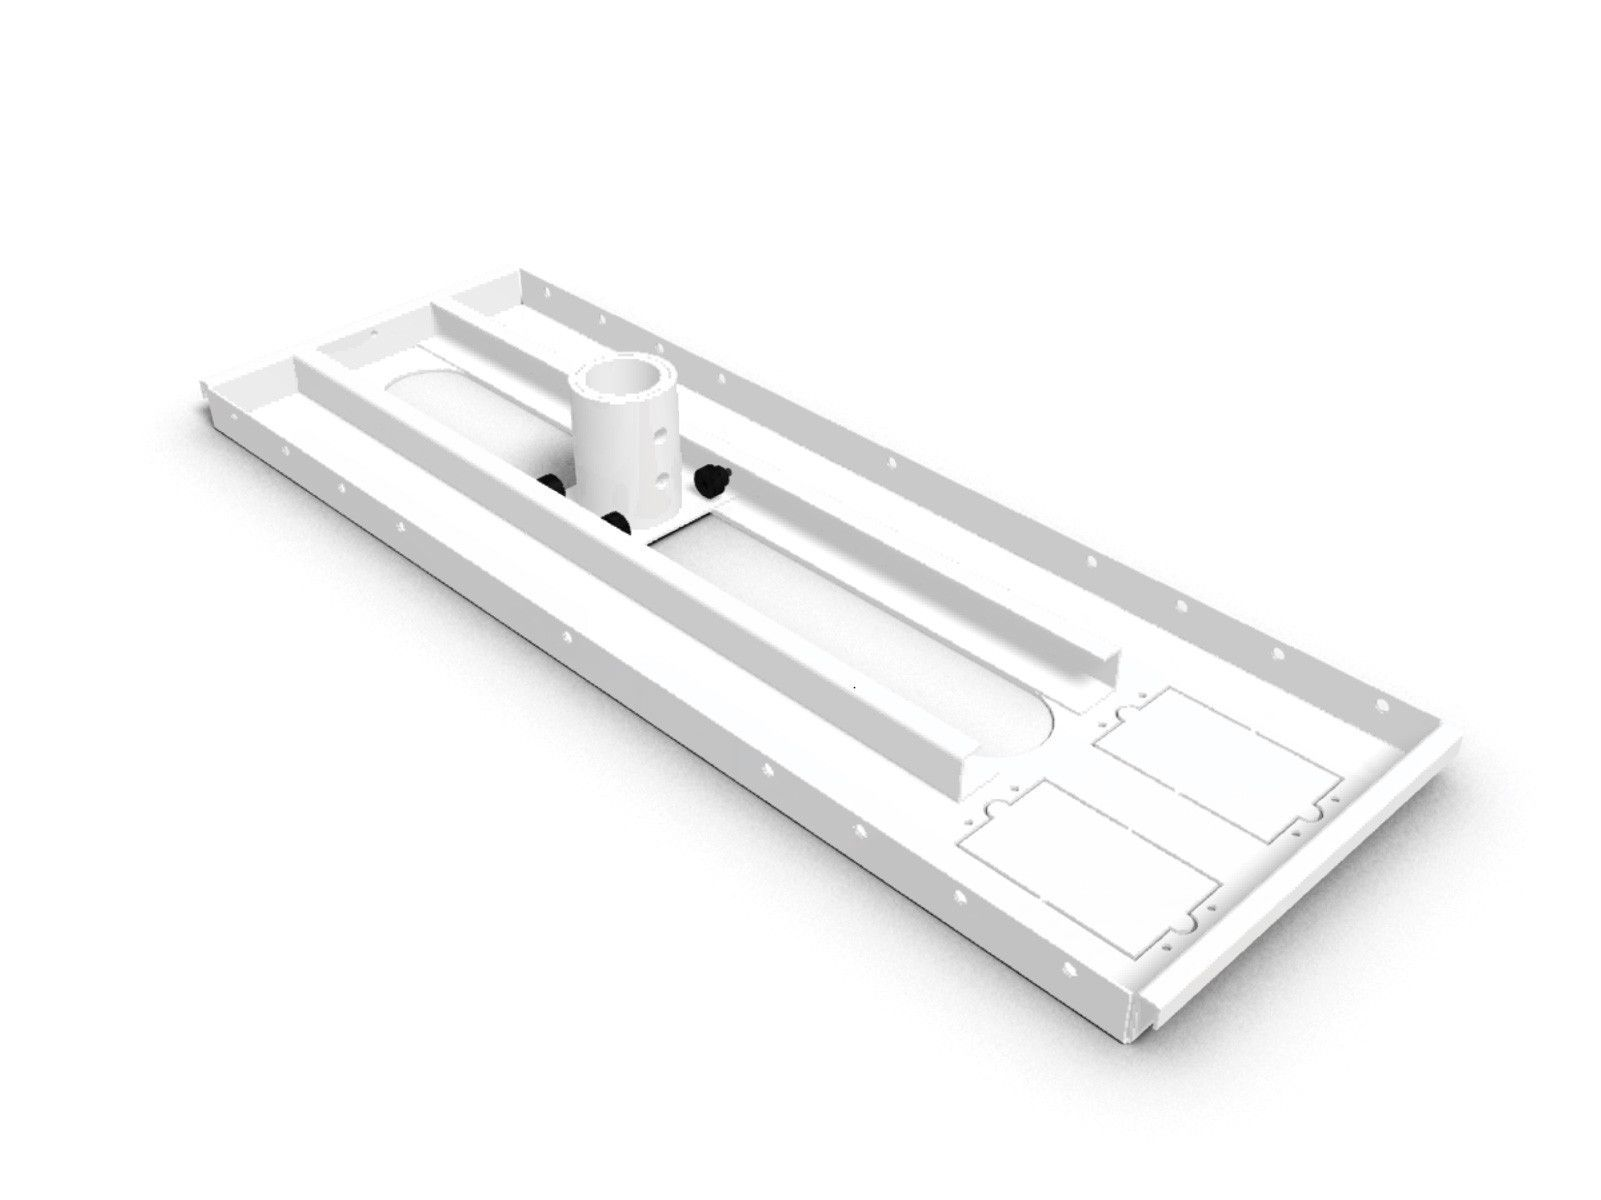 Ceiling Tile Plate For Projector Mount